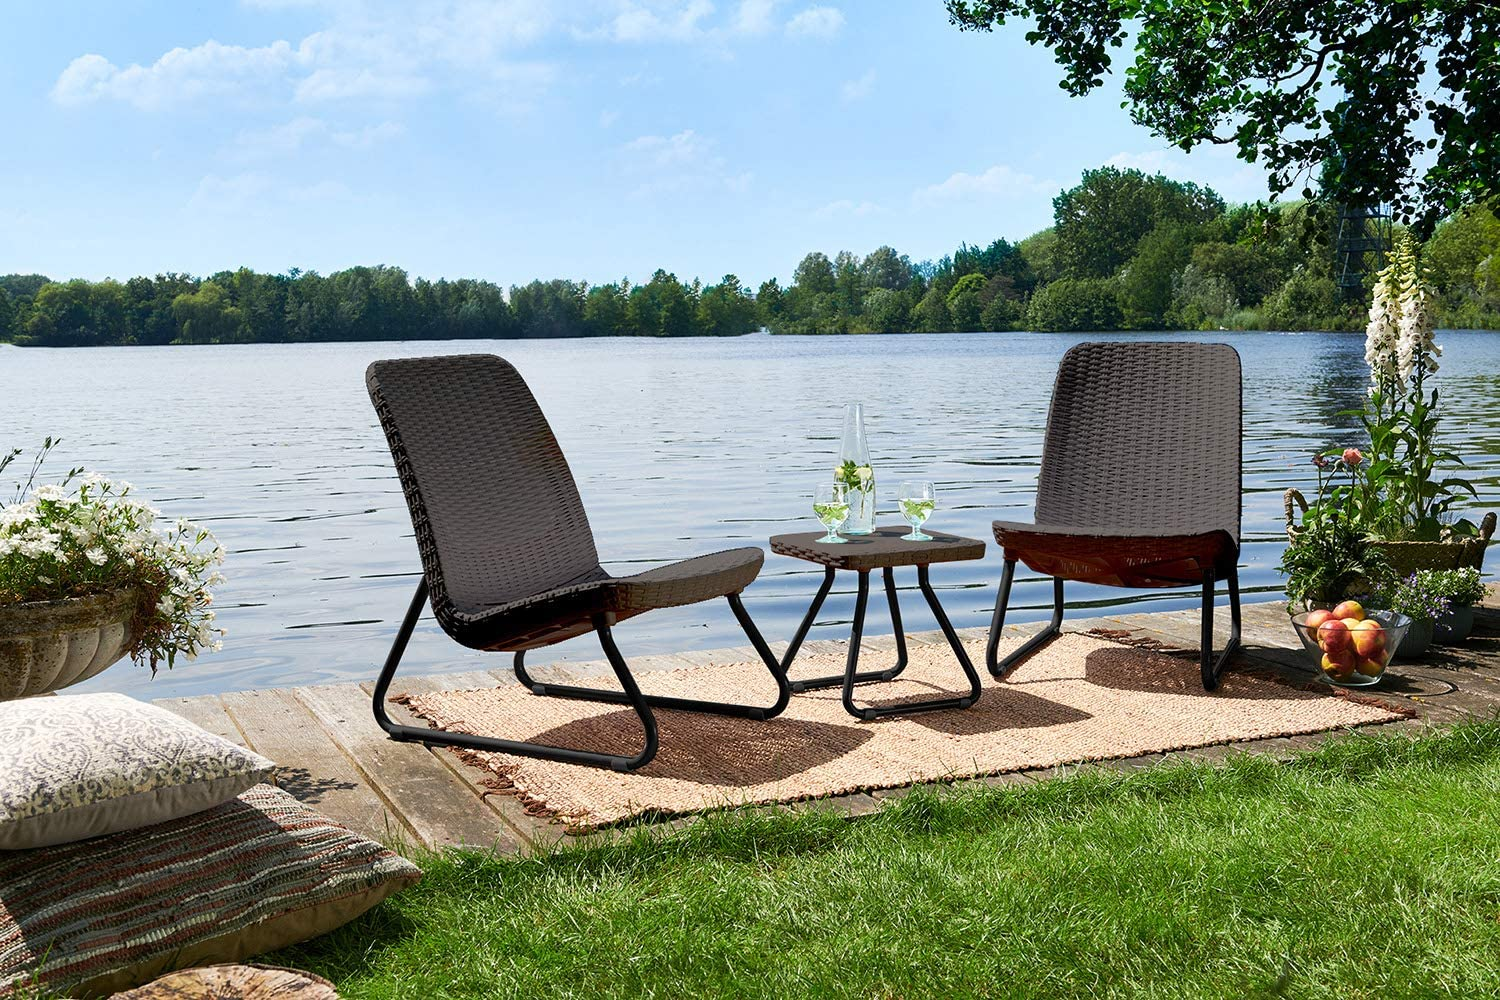 Keter-outdoor-furniture 15 Unique Furniture Designs for Outdoor Small Spaces